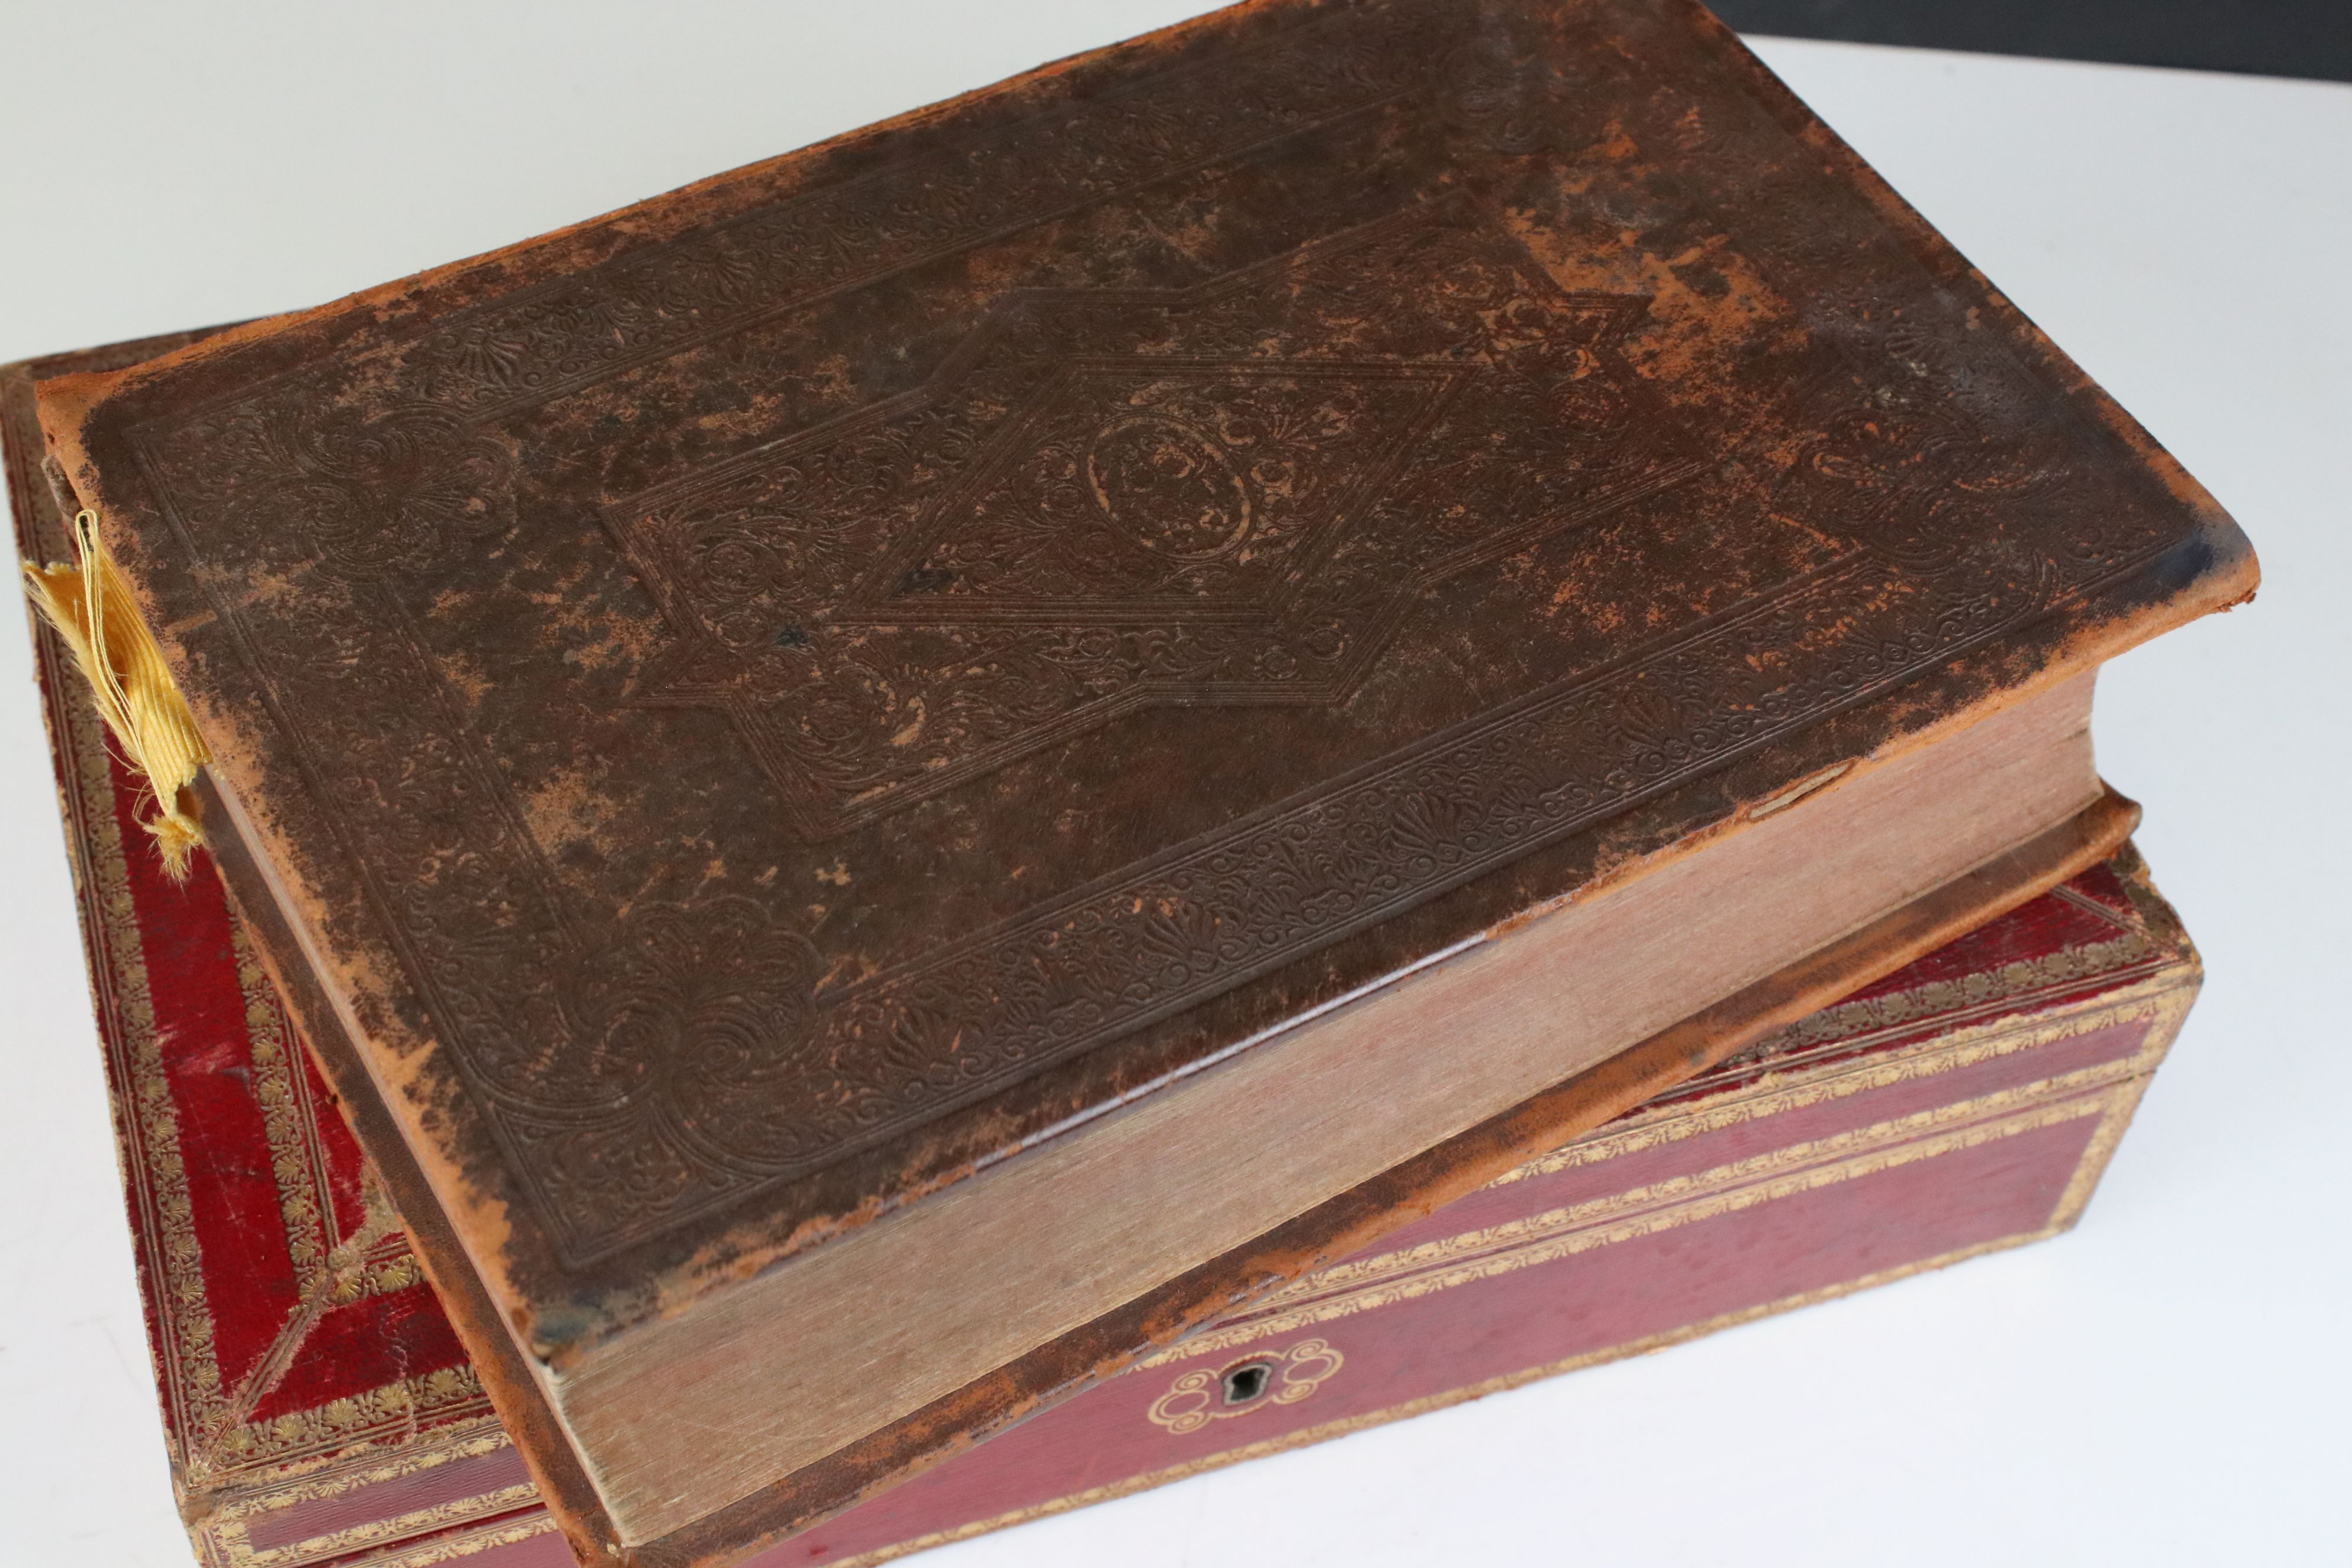 Late 19th / Early 20th century Tooled Red Leather and Gilt Box with blue lined interior containing a - Image 2 of 5